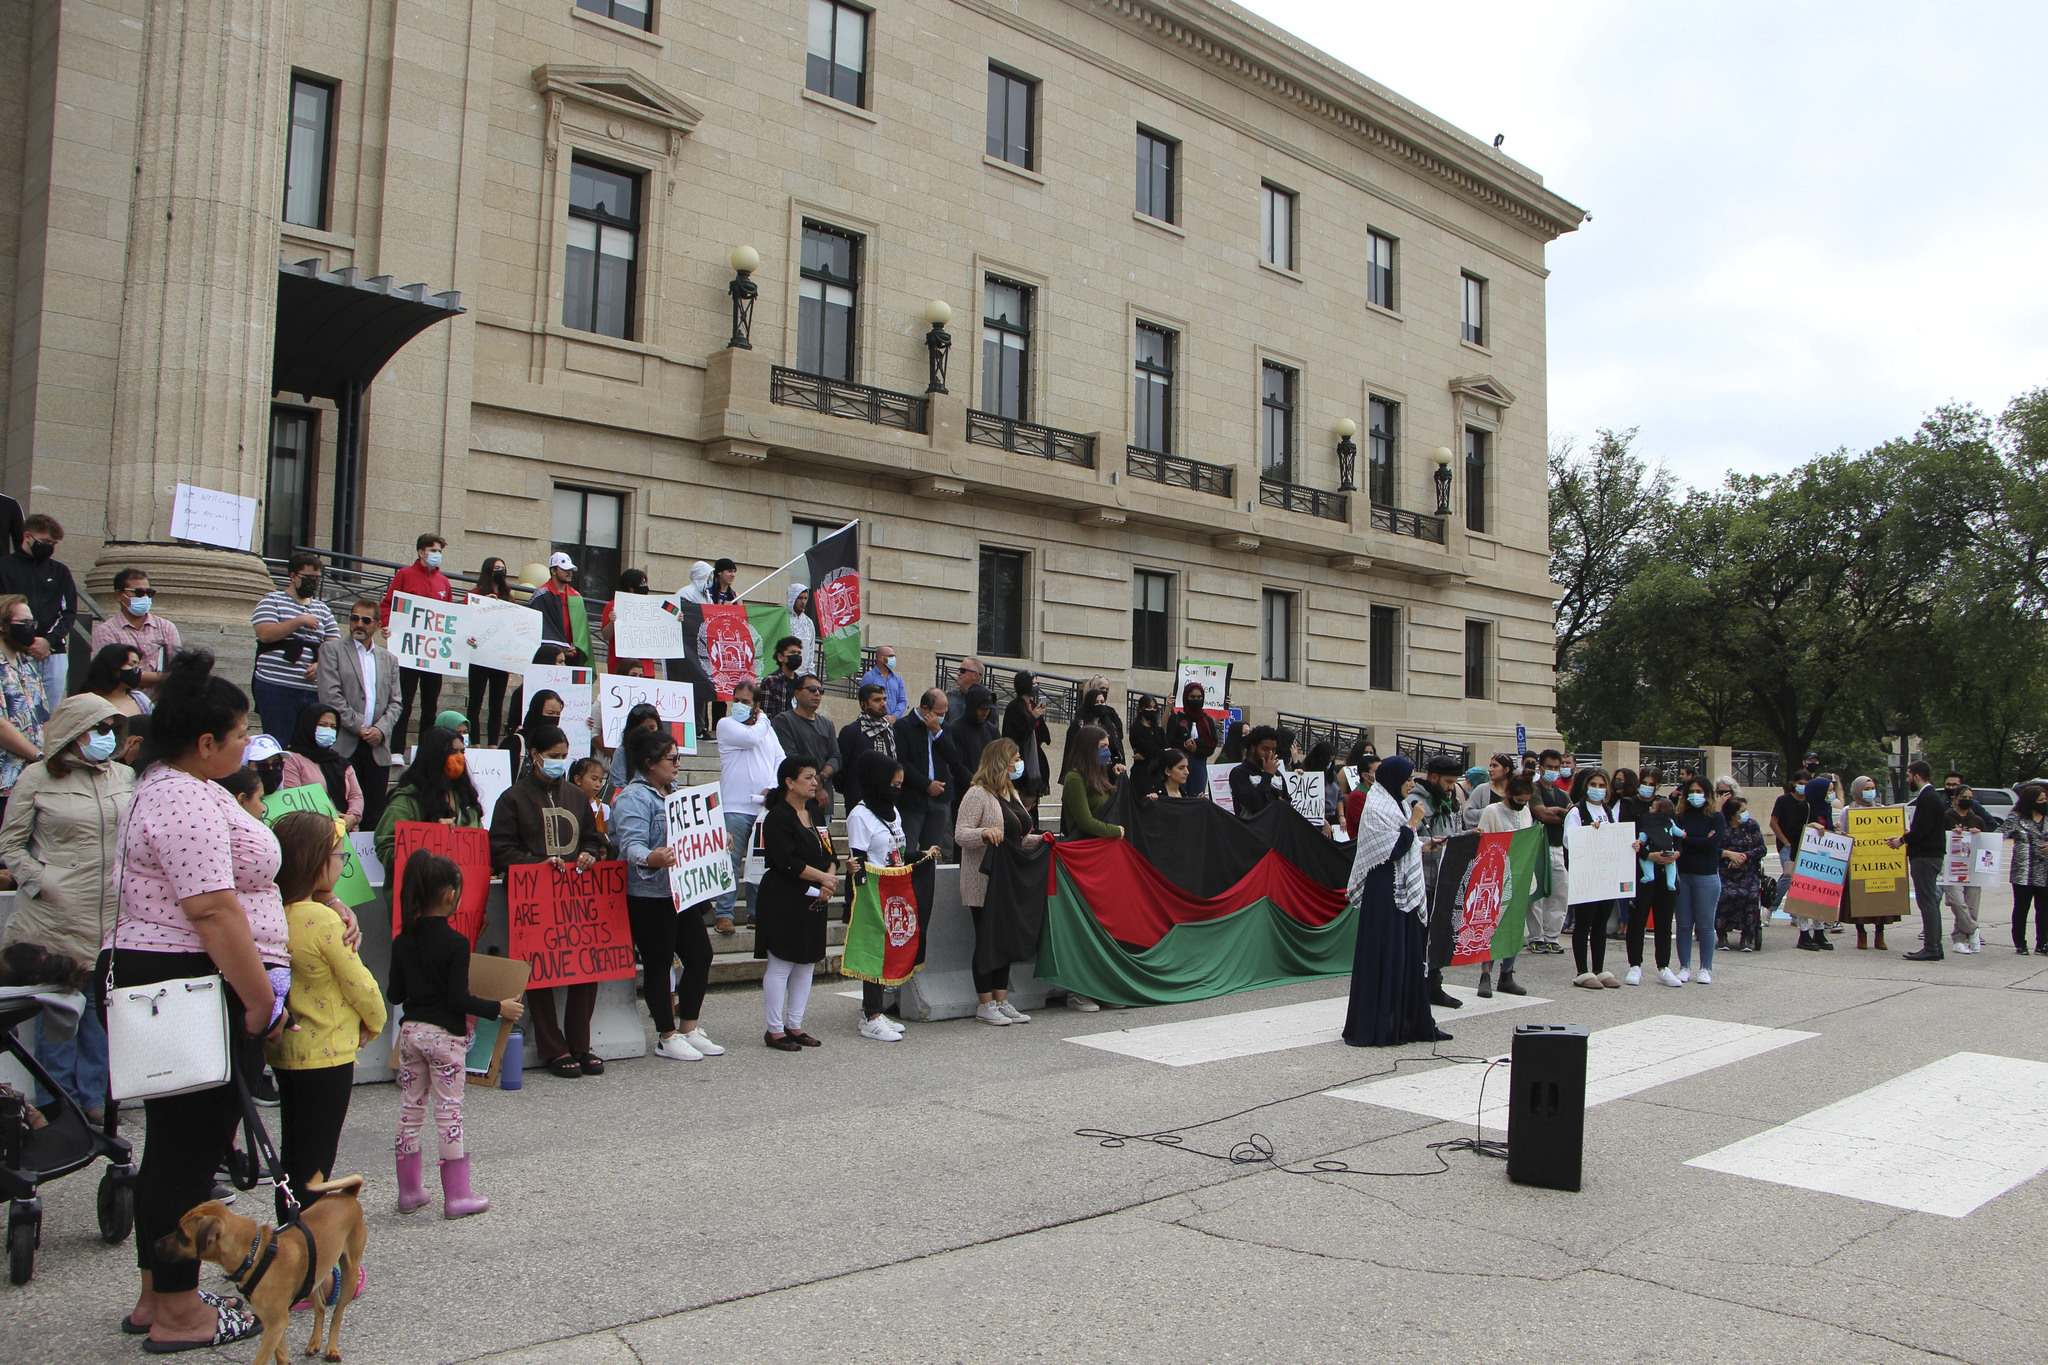 Protesters gather at the steps of the Manitoba Legislature on Aug. 28, calling Ottawa to send more help for Afghans who want to flee Afghanistan since the Taliban have taken over the country. (Gabrielle Piche / Winnipeg Free Press)</p>